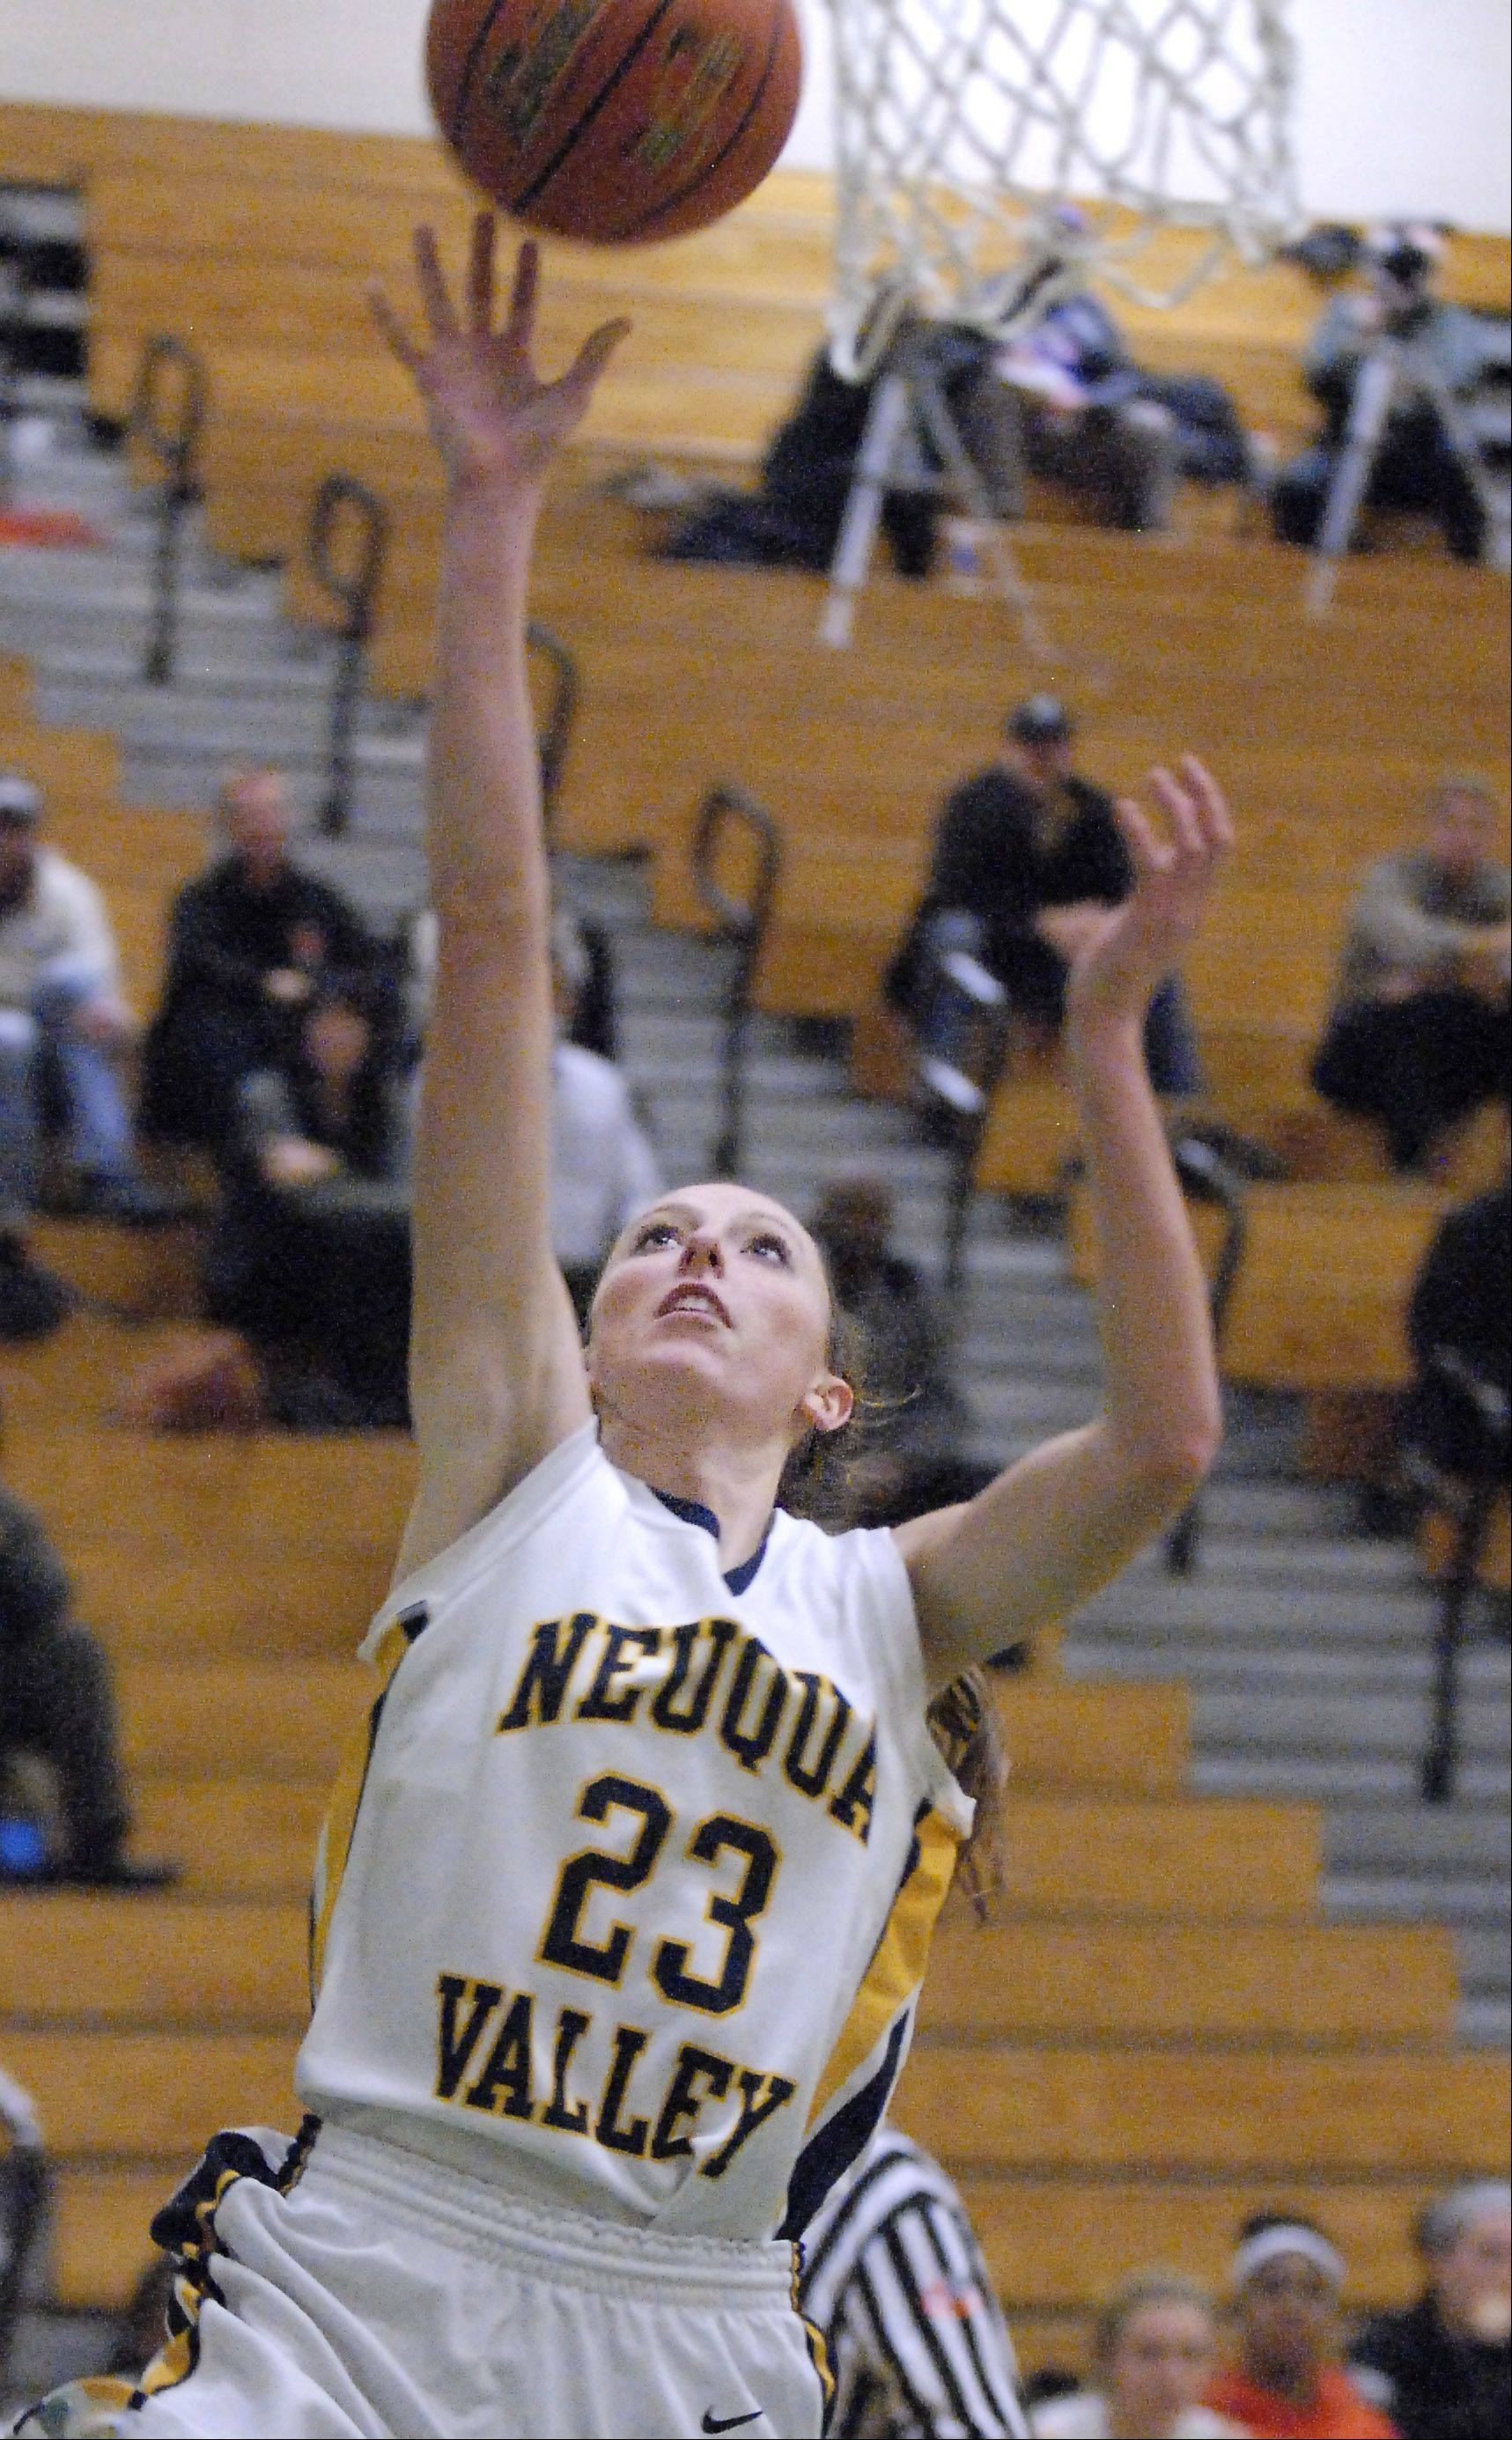 Nequa Valley's Allison Hedrick sinks a shot in the third quarter on Wednesday, November 14.